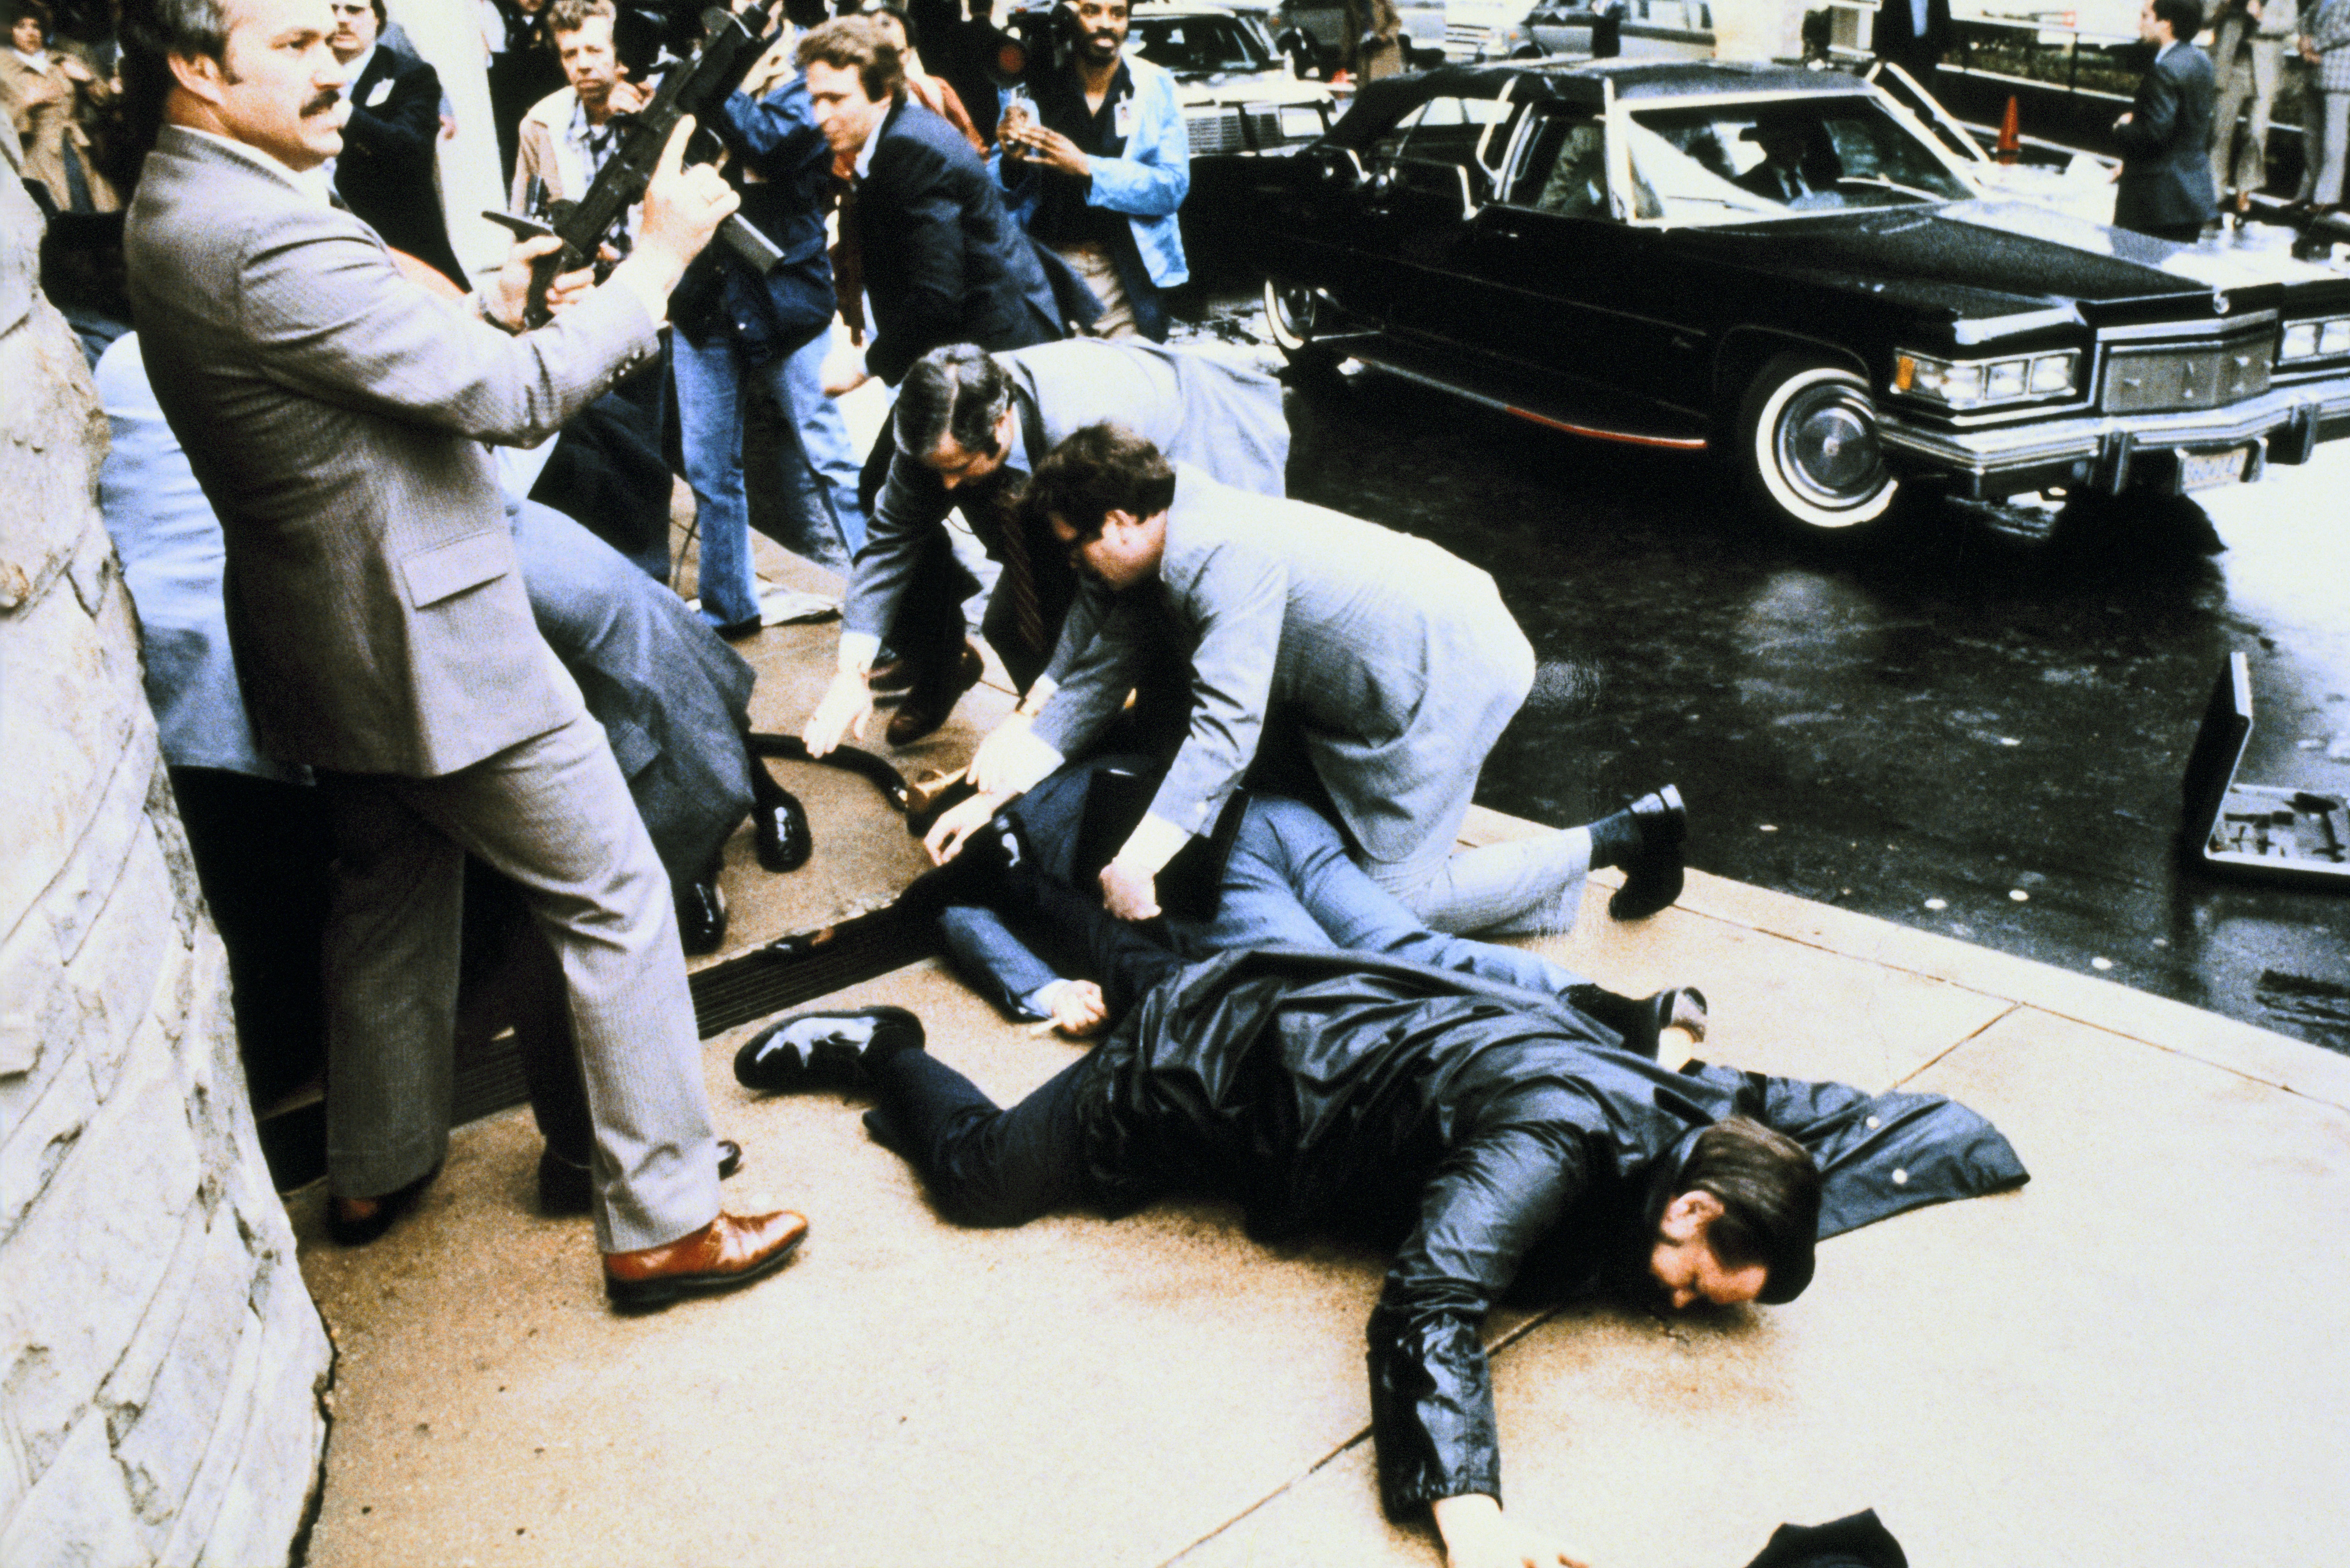 Assassination Attempt Against The President Ronald Reagan In 1981, March 30